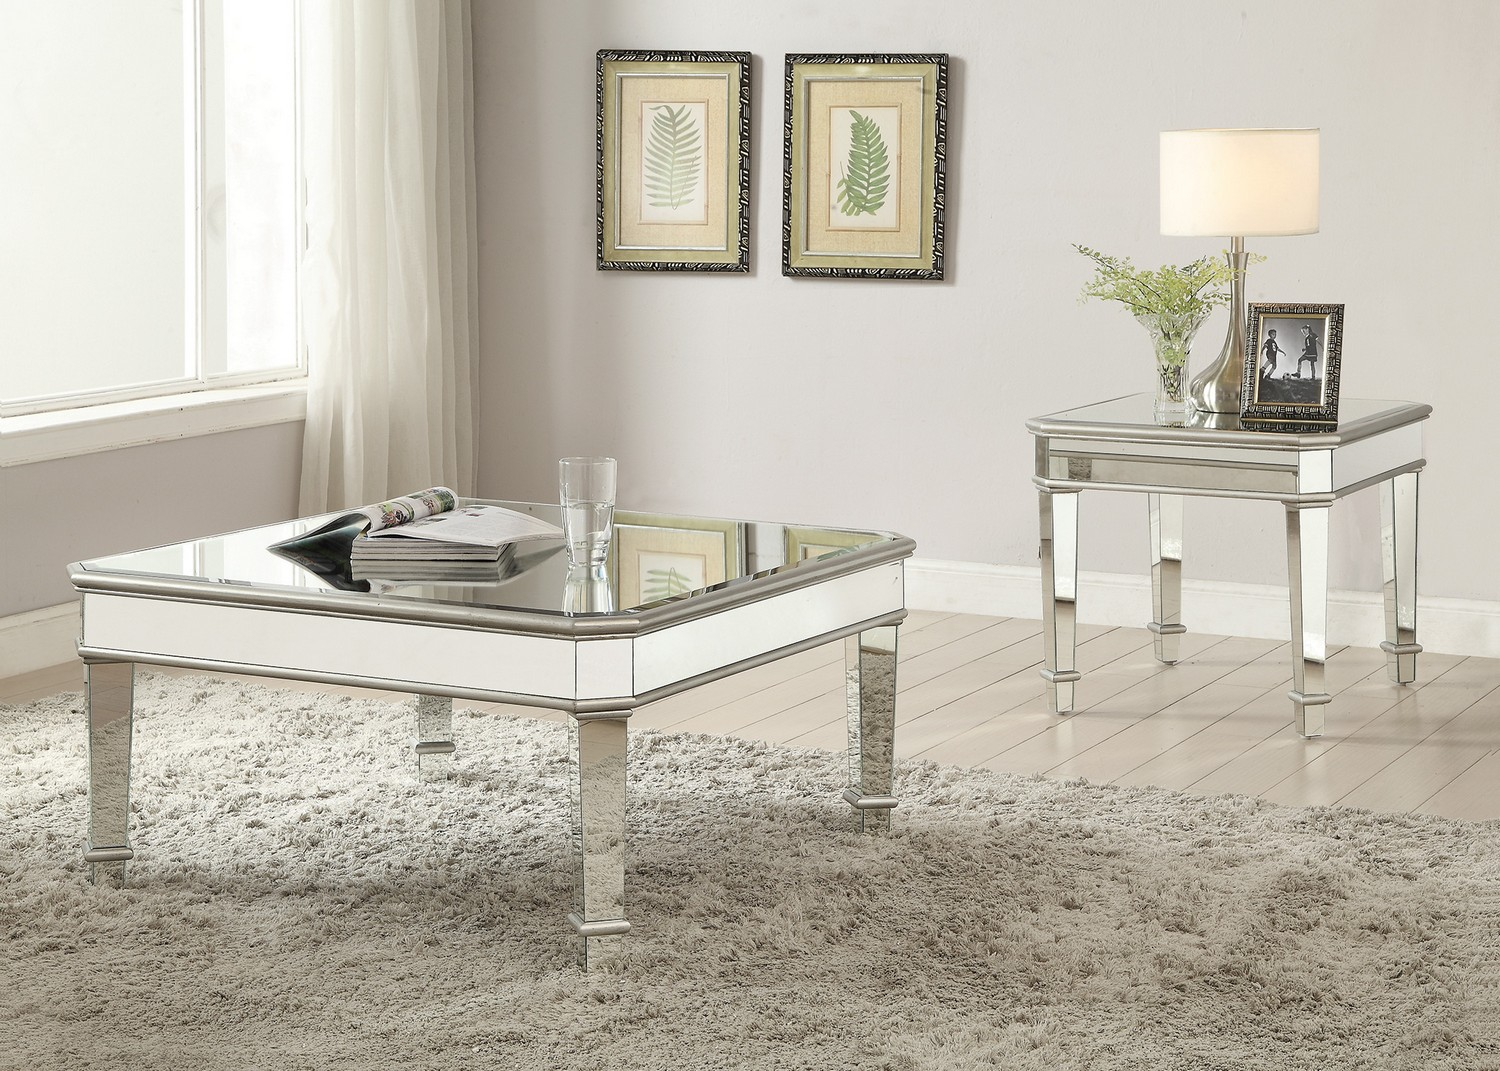 Coaster 703938 Coffee/Cocktail Table Set - Silver